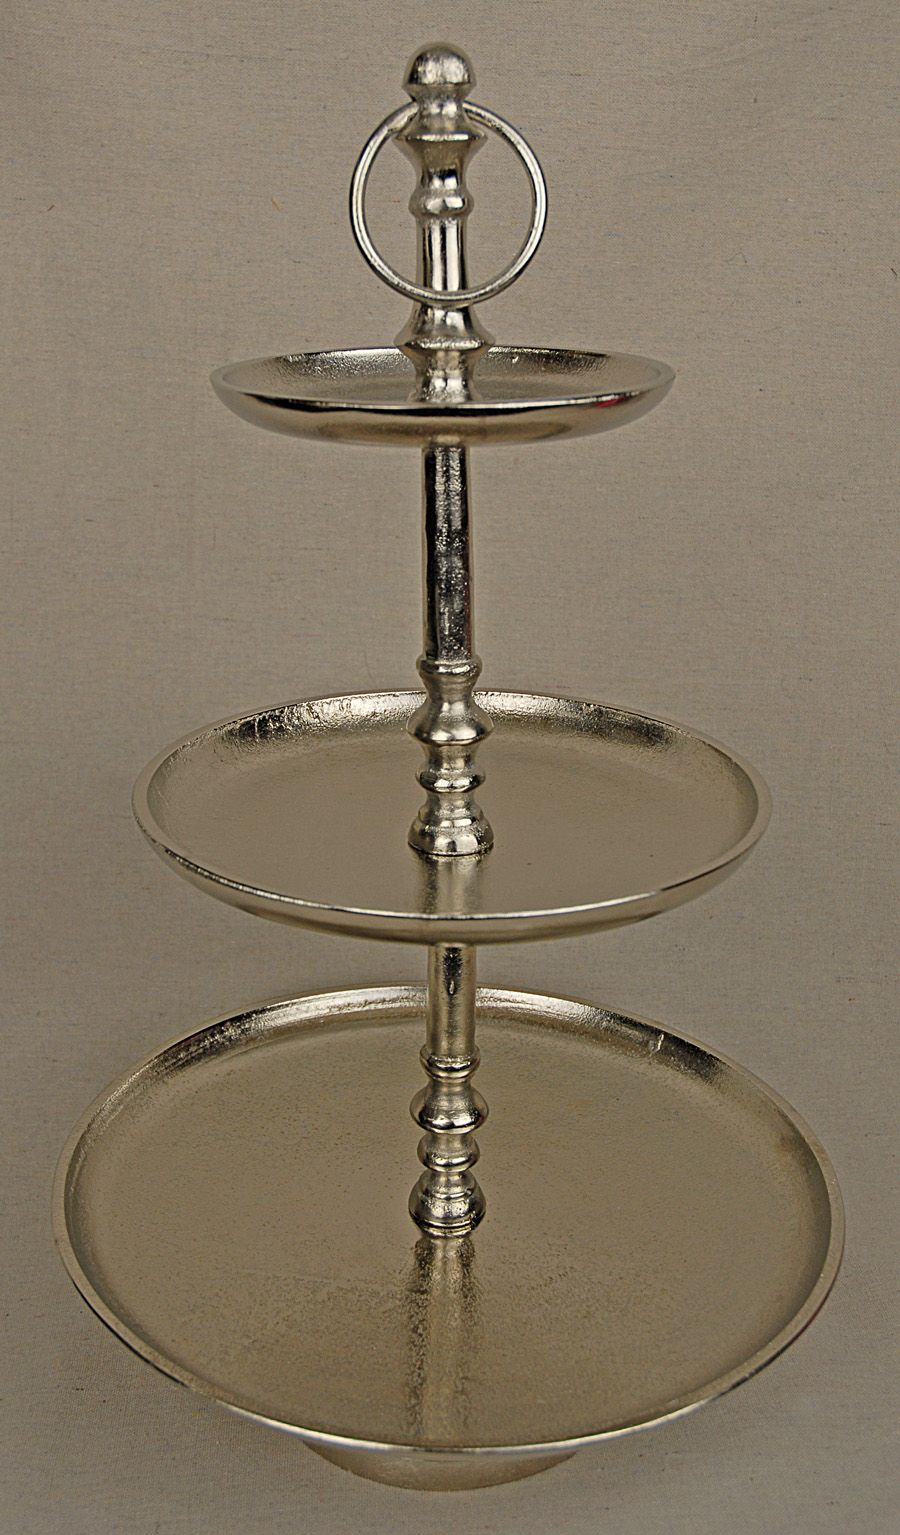 3tier metal dessert stand 20in perfect for serving